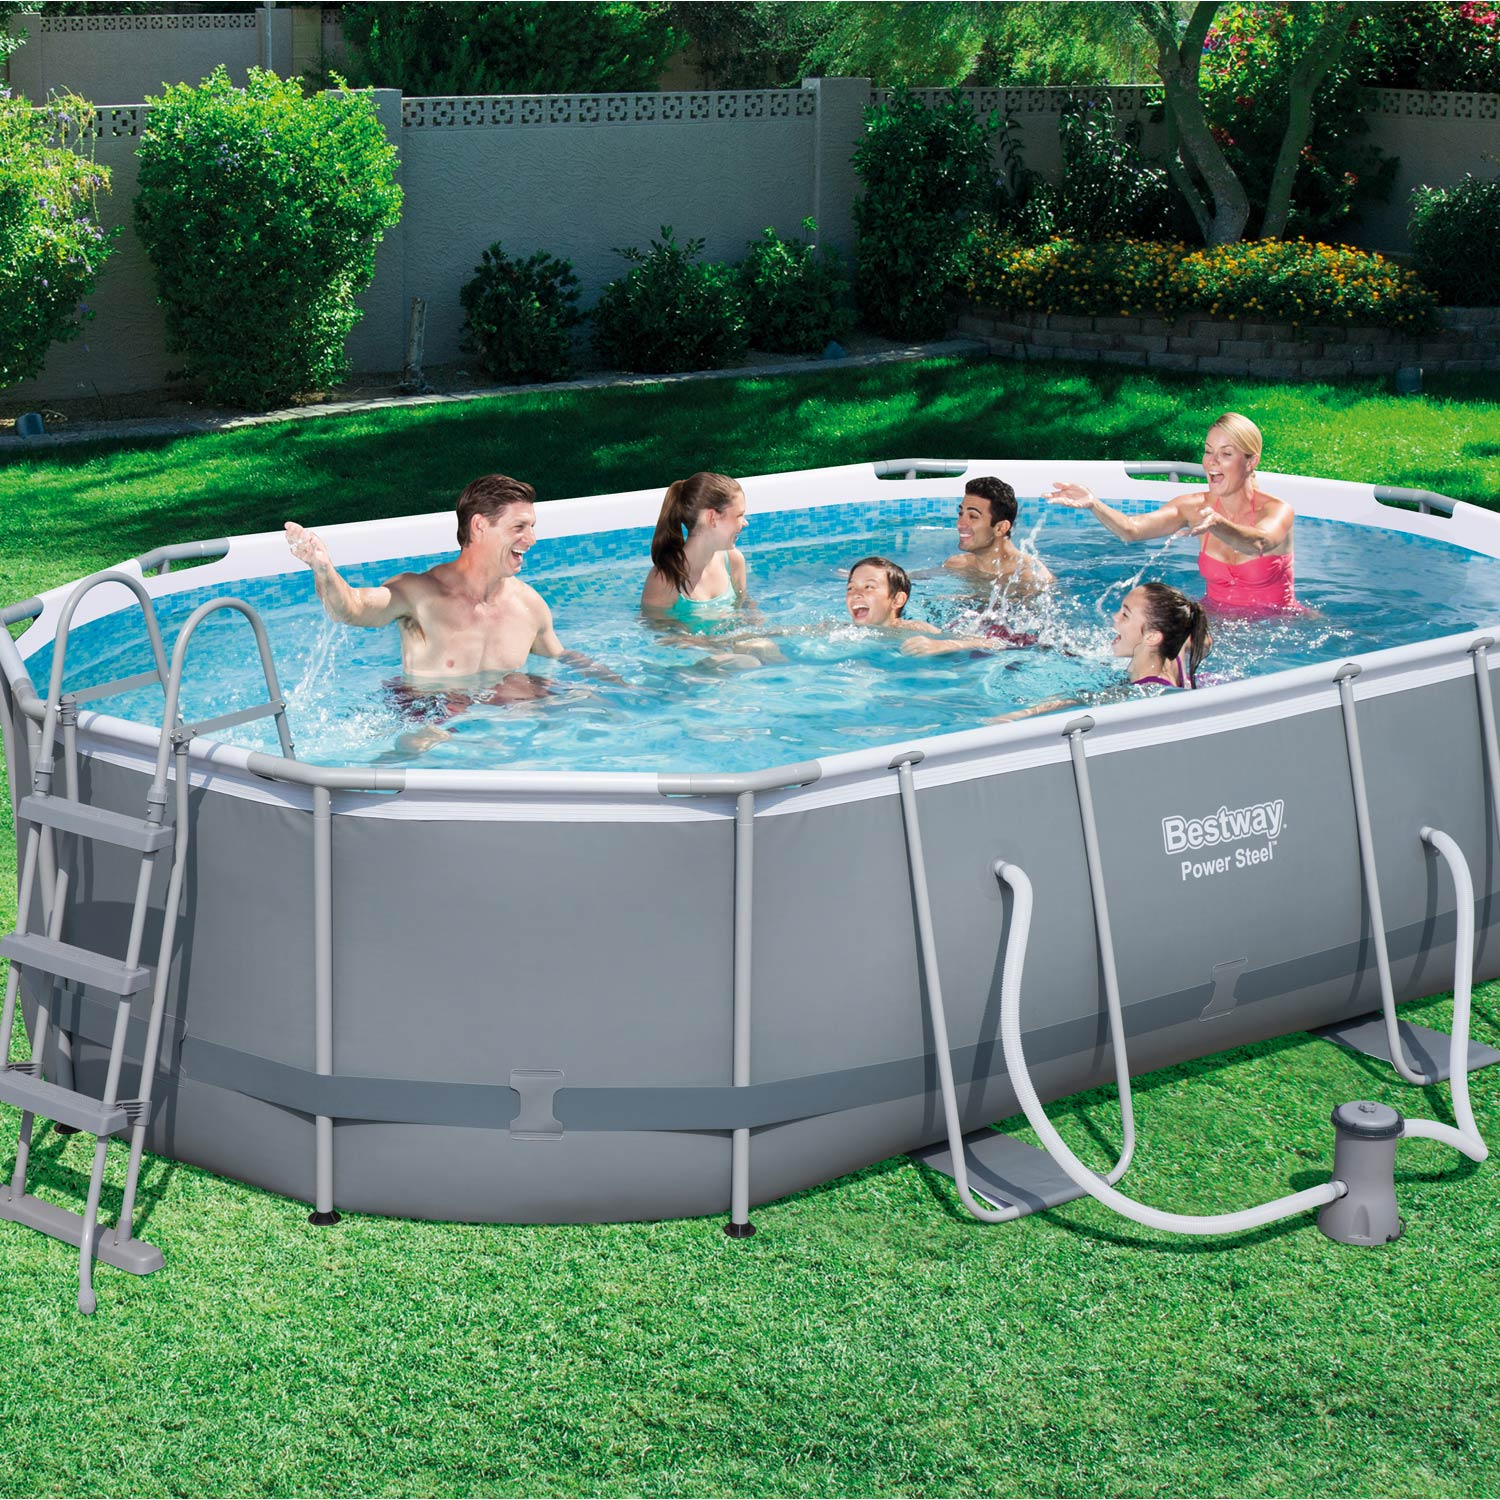 Piscine hors sol autoportante tubulaire bestway l x for Piscine hors sol 4mx3m